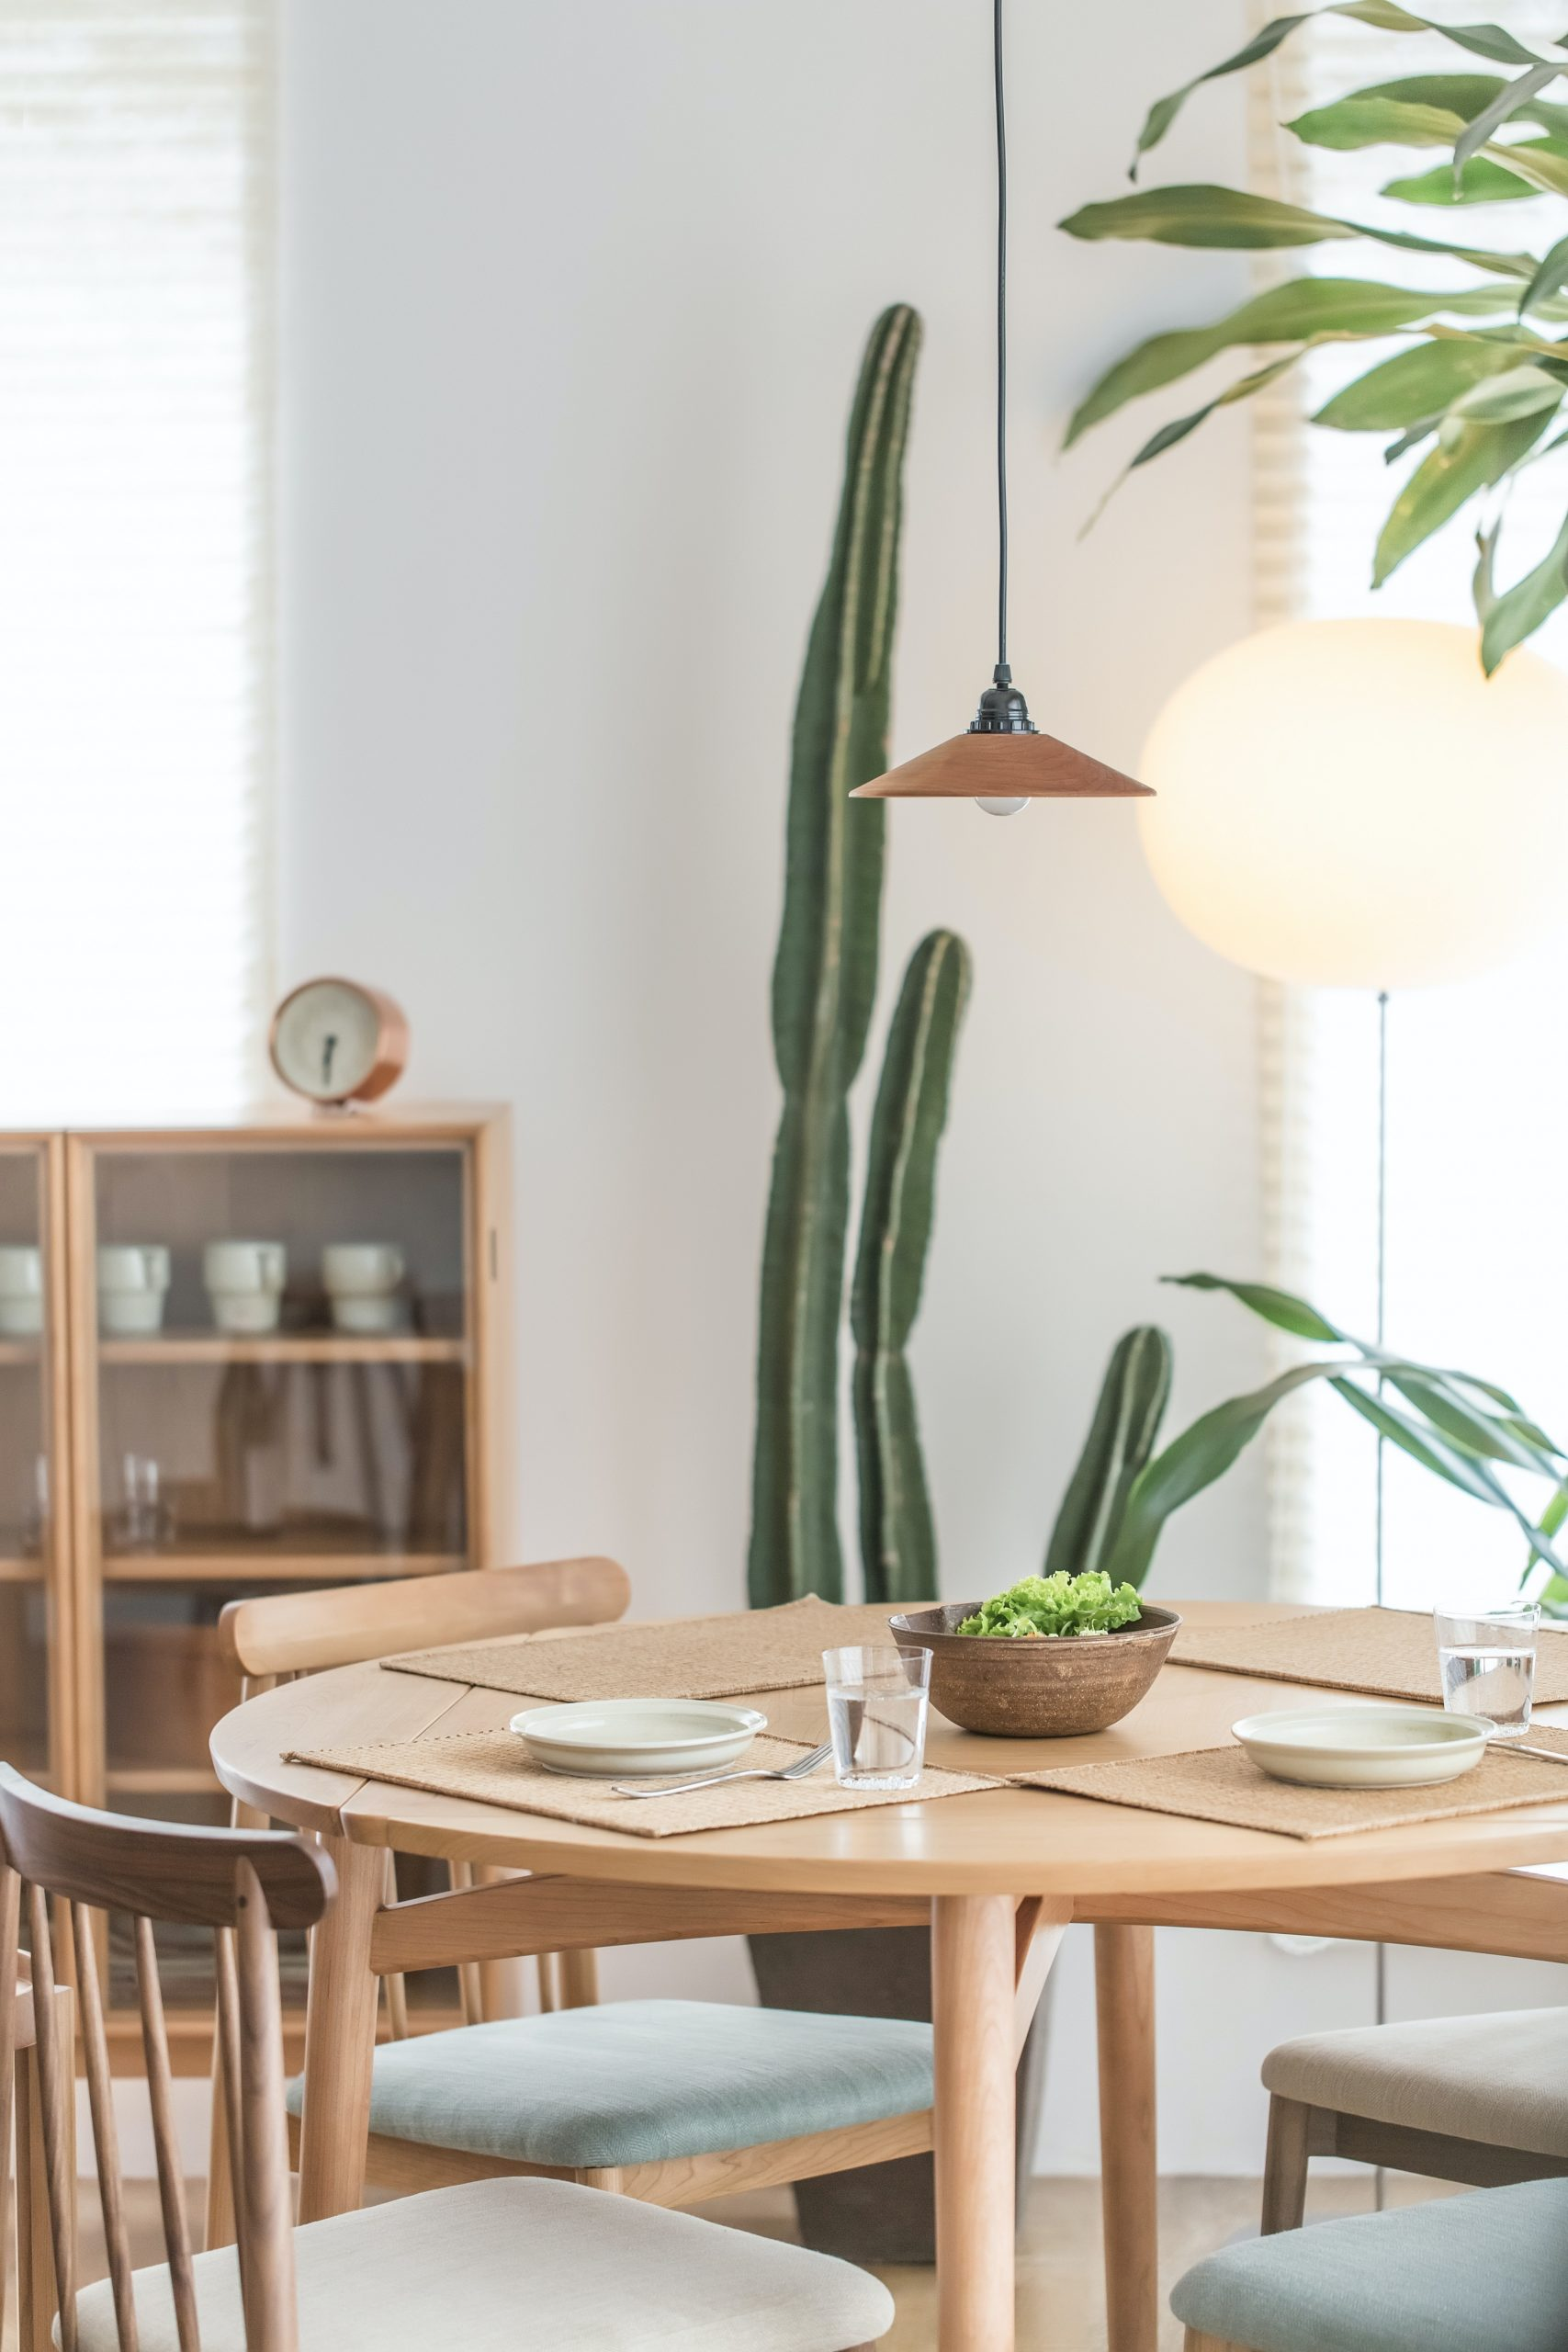 Rustic kitchen table with a cactus sitting behind it